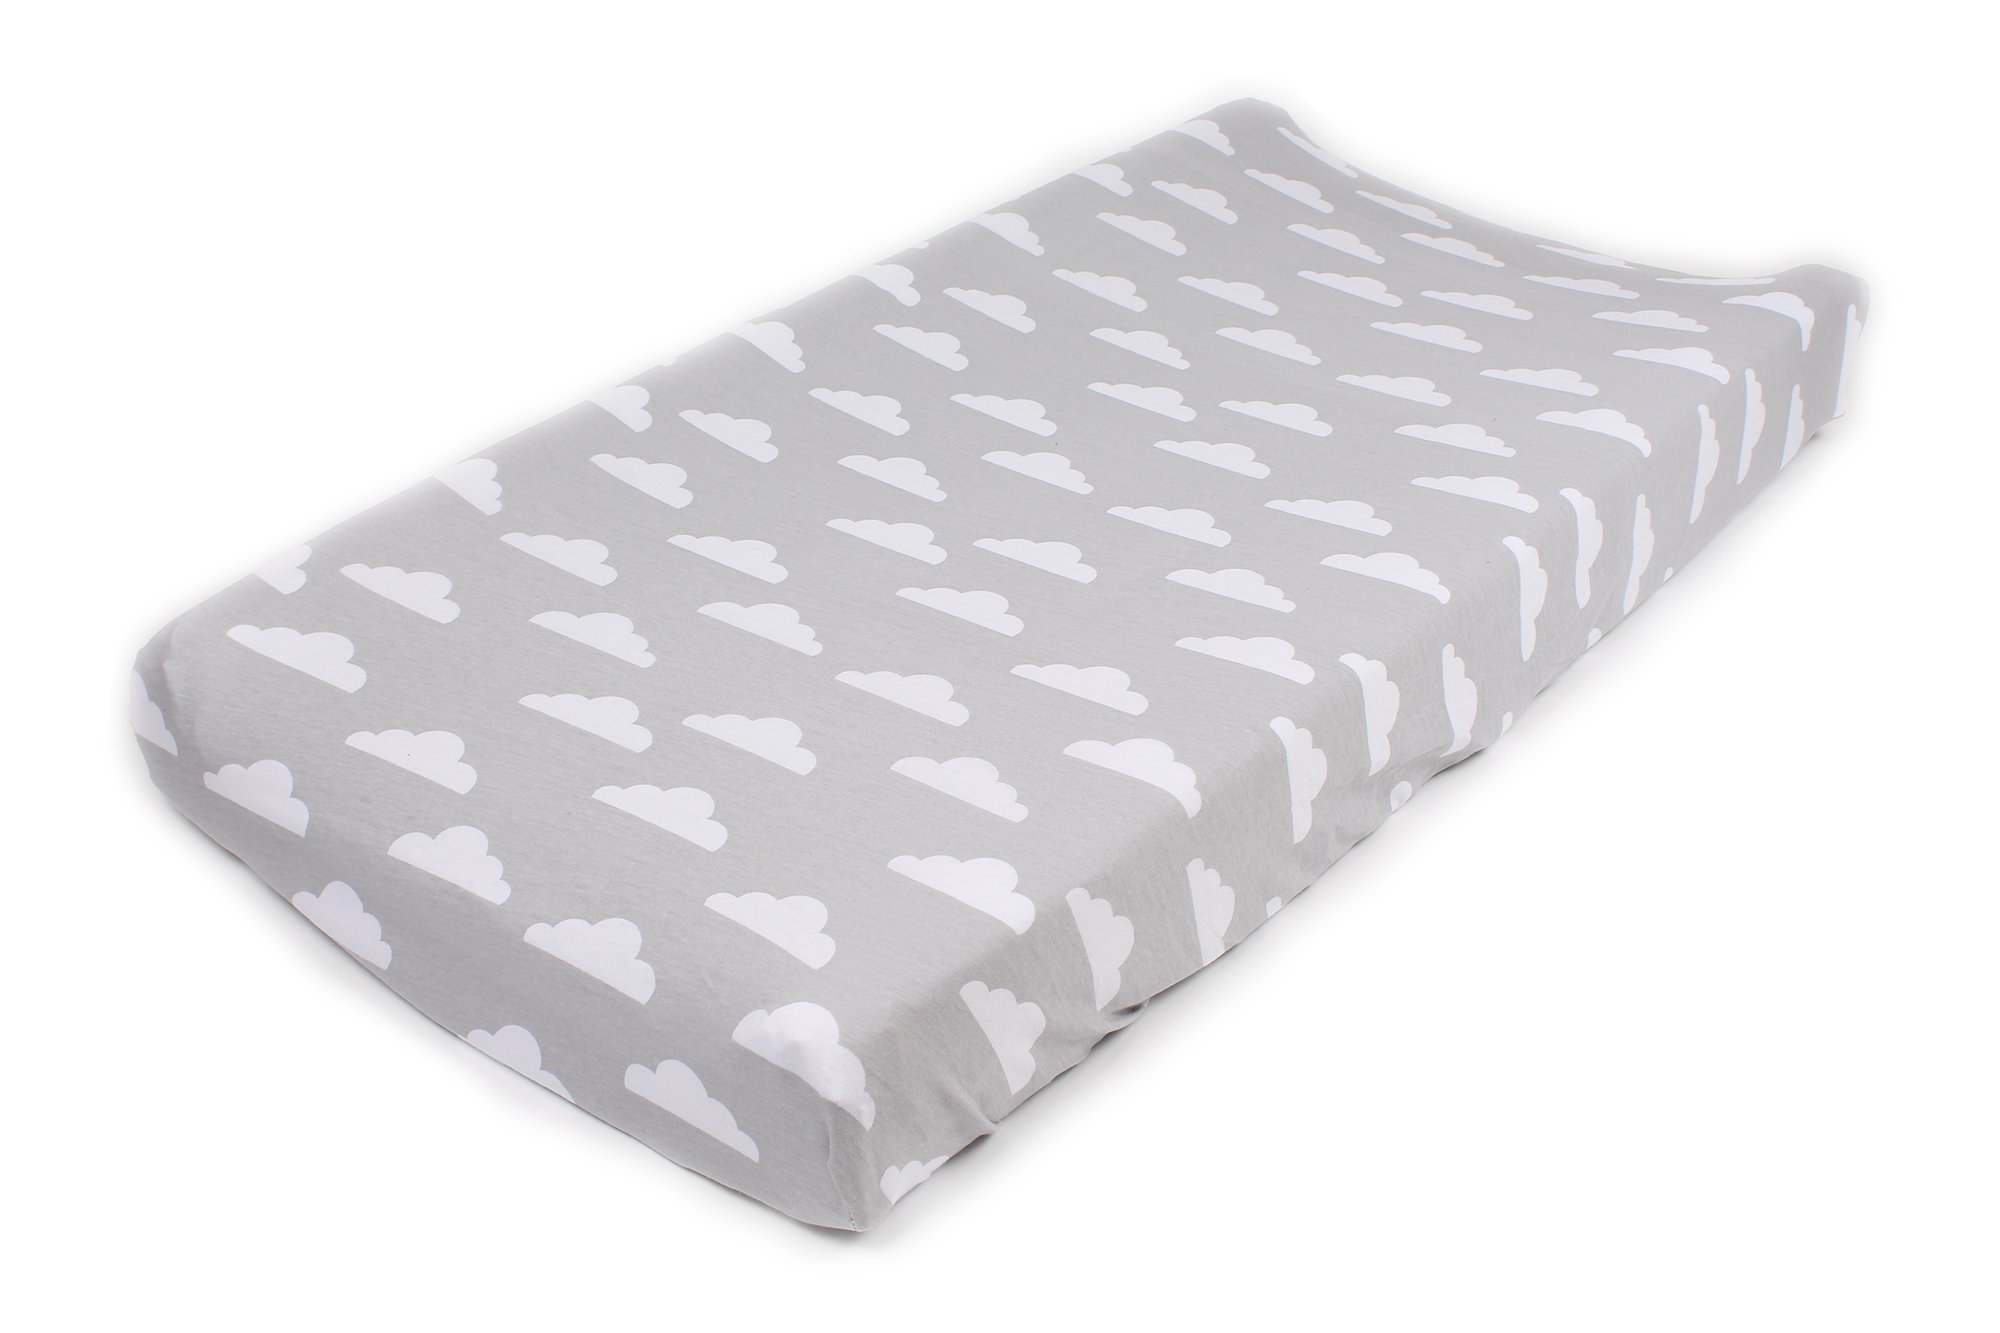 Cotton Diaper Changing Pad Cover 2 Pack Stripes & Clouds by Mumby by Mumby (Image #3)